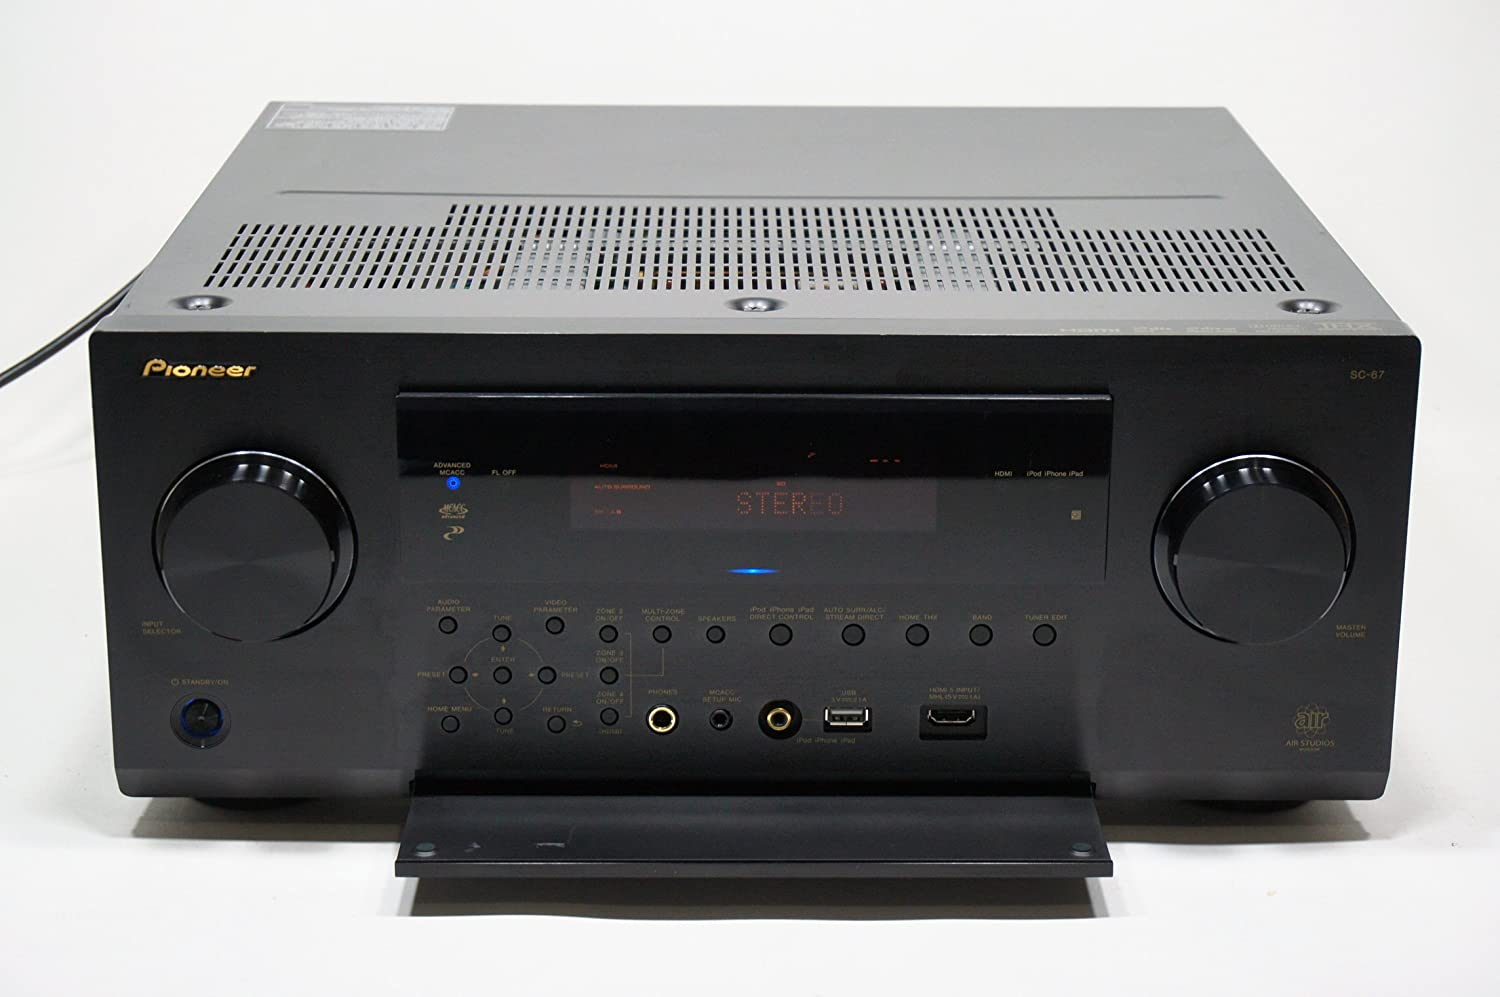 Amazon.com: Pioneer SC-67 9.2-Channel Network Ready AV Receiver ...